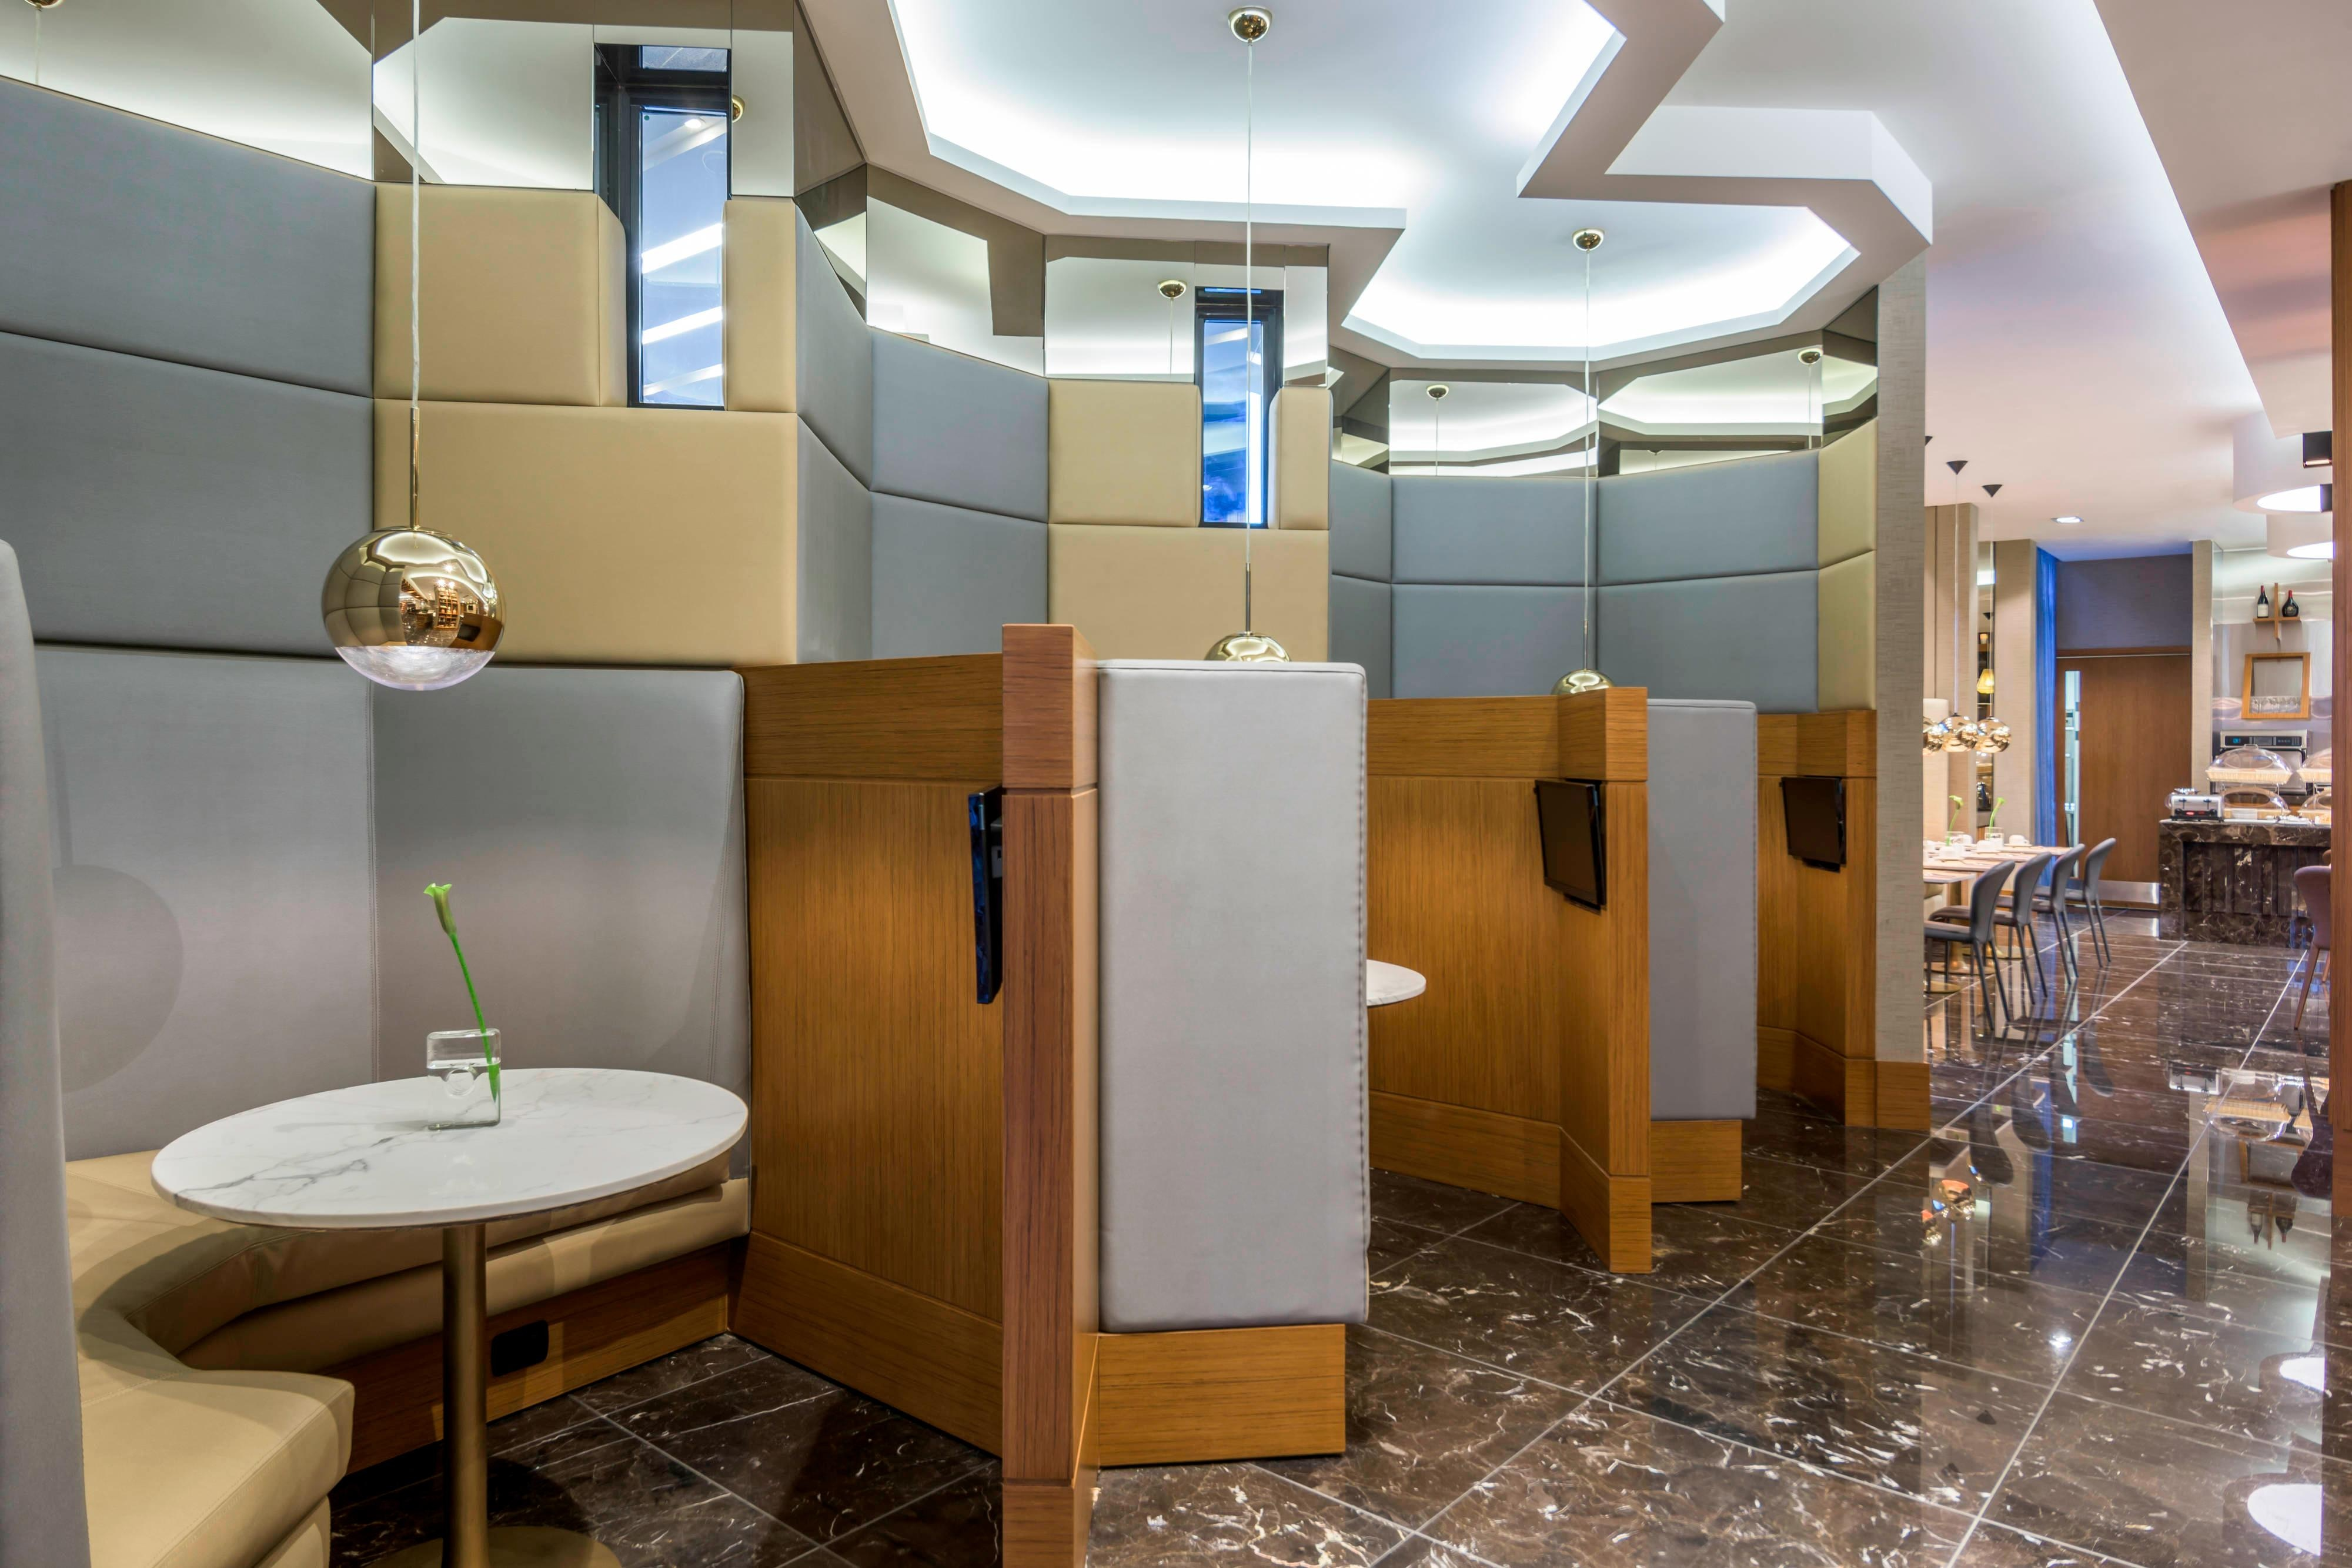 Airport Hotel Media Pods